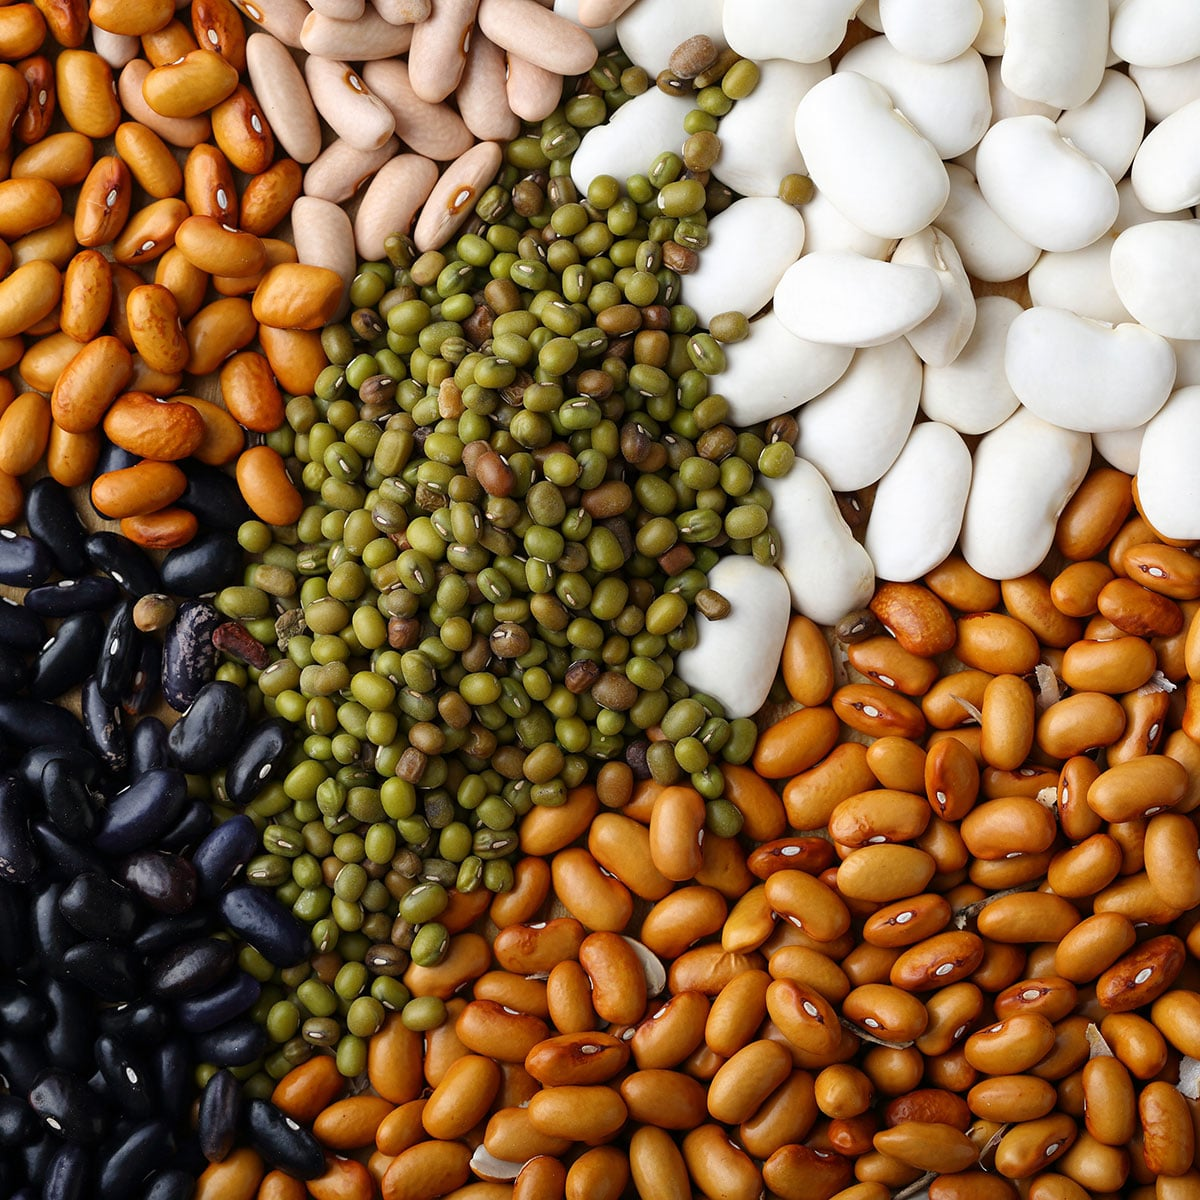 National Food Day Calendar 2022.National Bean Day January 6 2022 National Today